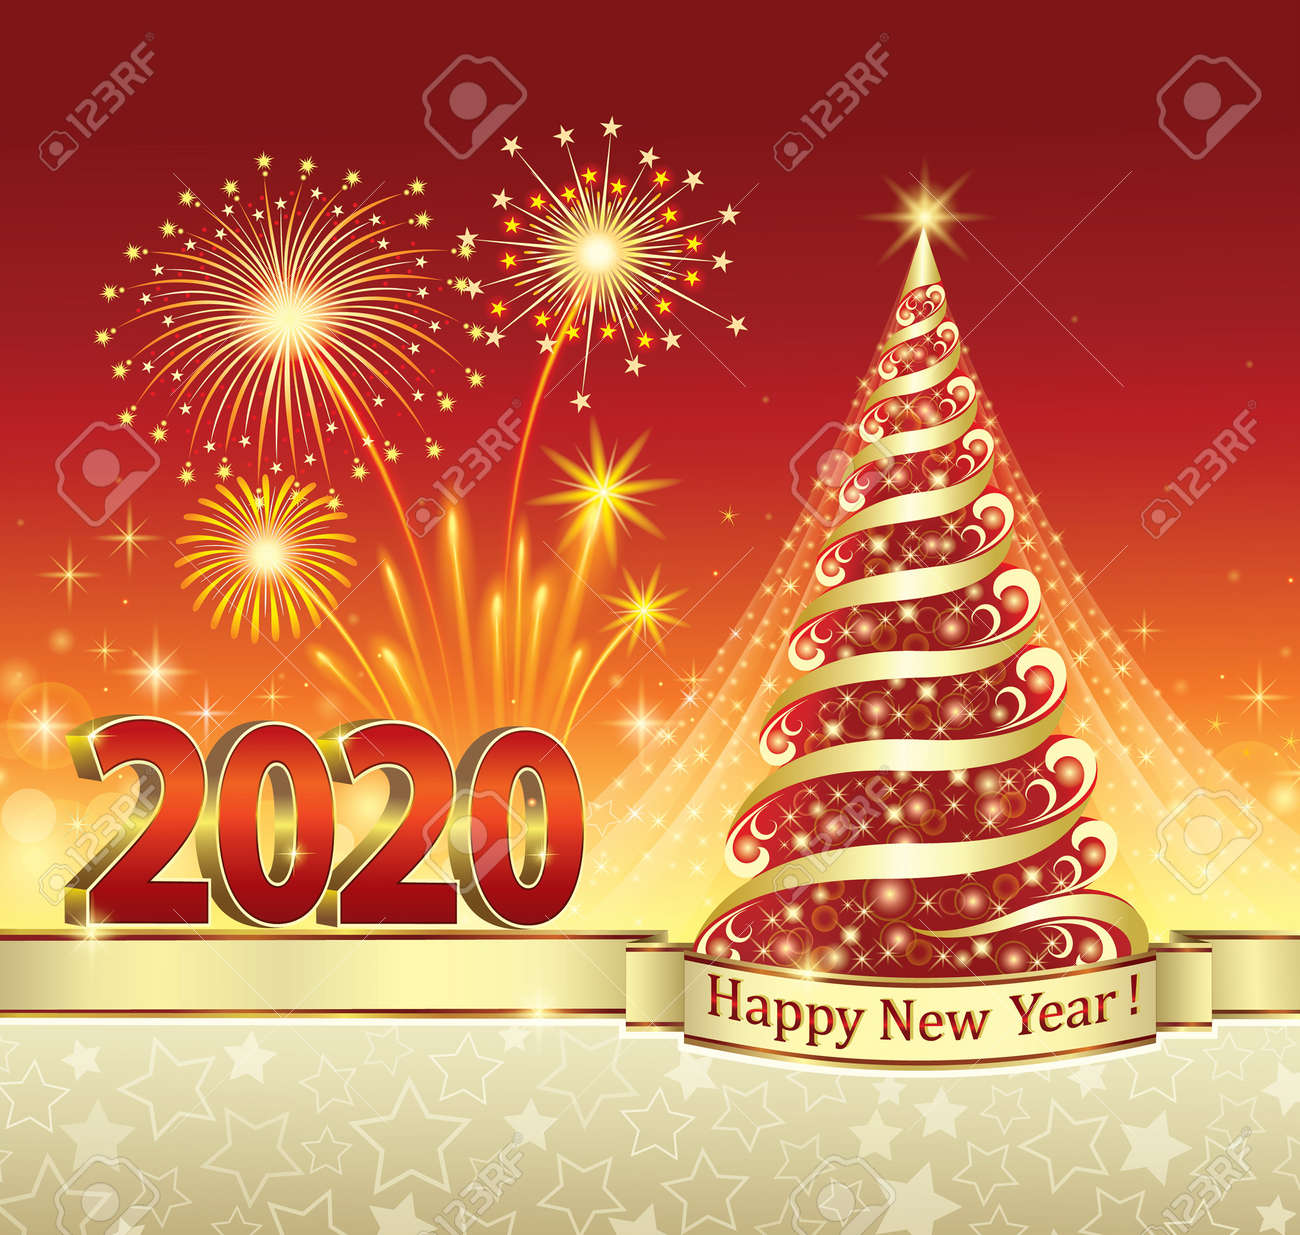 2020 New Year celebration with Christmas tree and fireworks. Greeting card with stars and red background decorated with gold ribbon.Vector illustration - 131066633